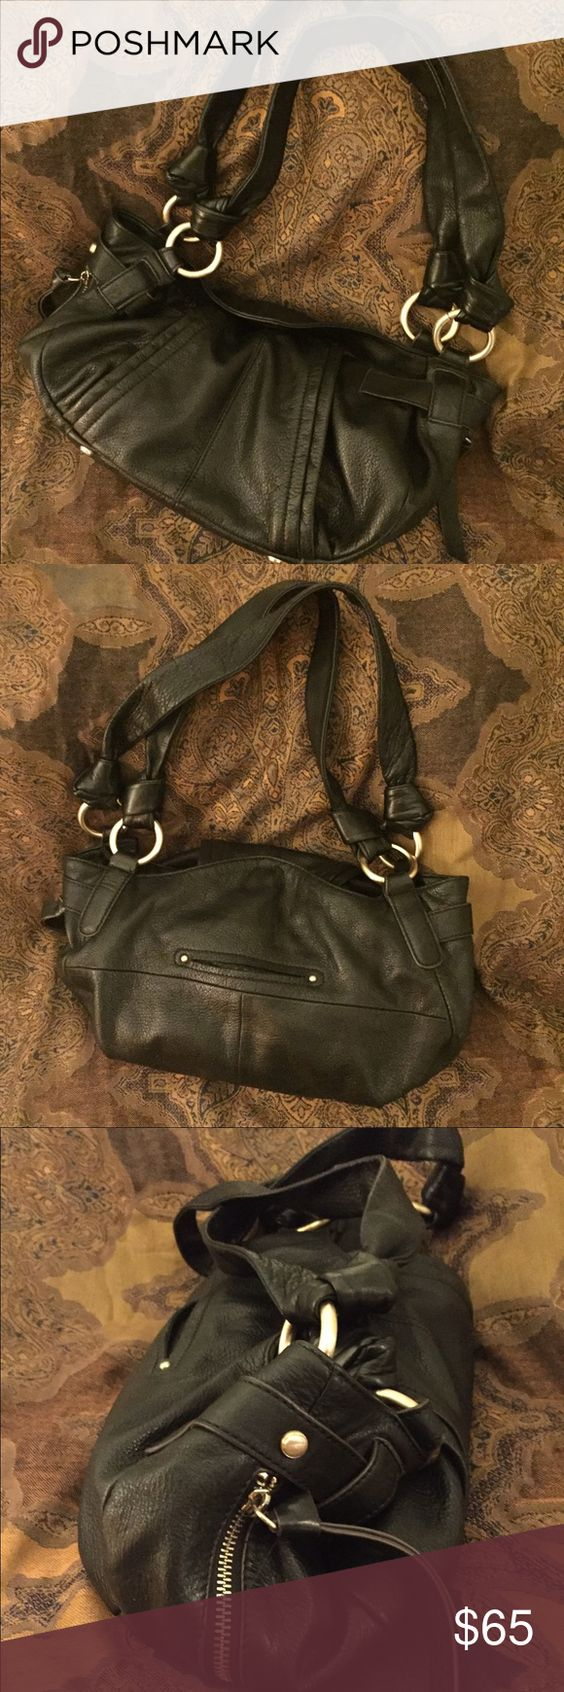 B. Makowsky Leather Shoulder Bag Excellent used condition without any signs of wear.  Luxurious thick black leather with gold hardware, roomy interior with large zipper compartment inside. Magnetic closure. Bags Shoulder Bags